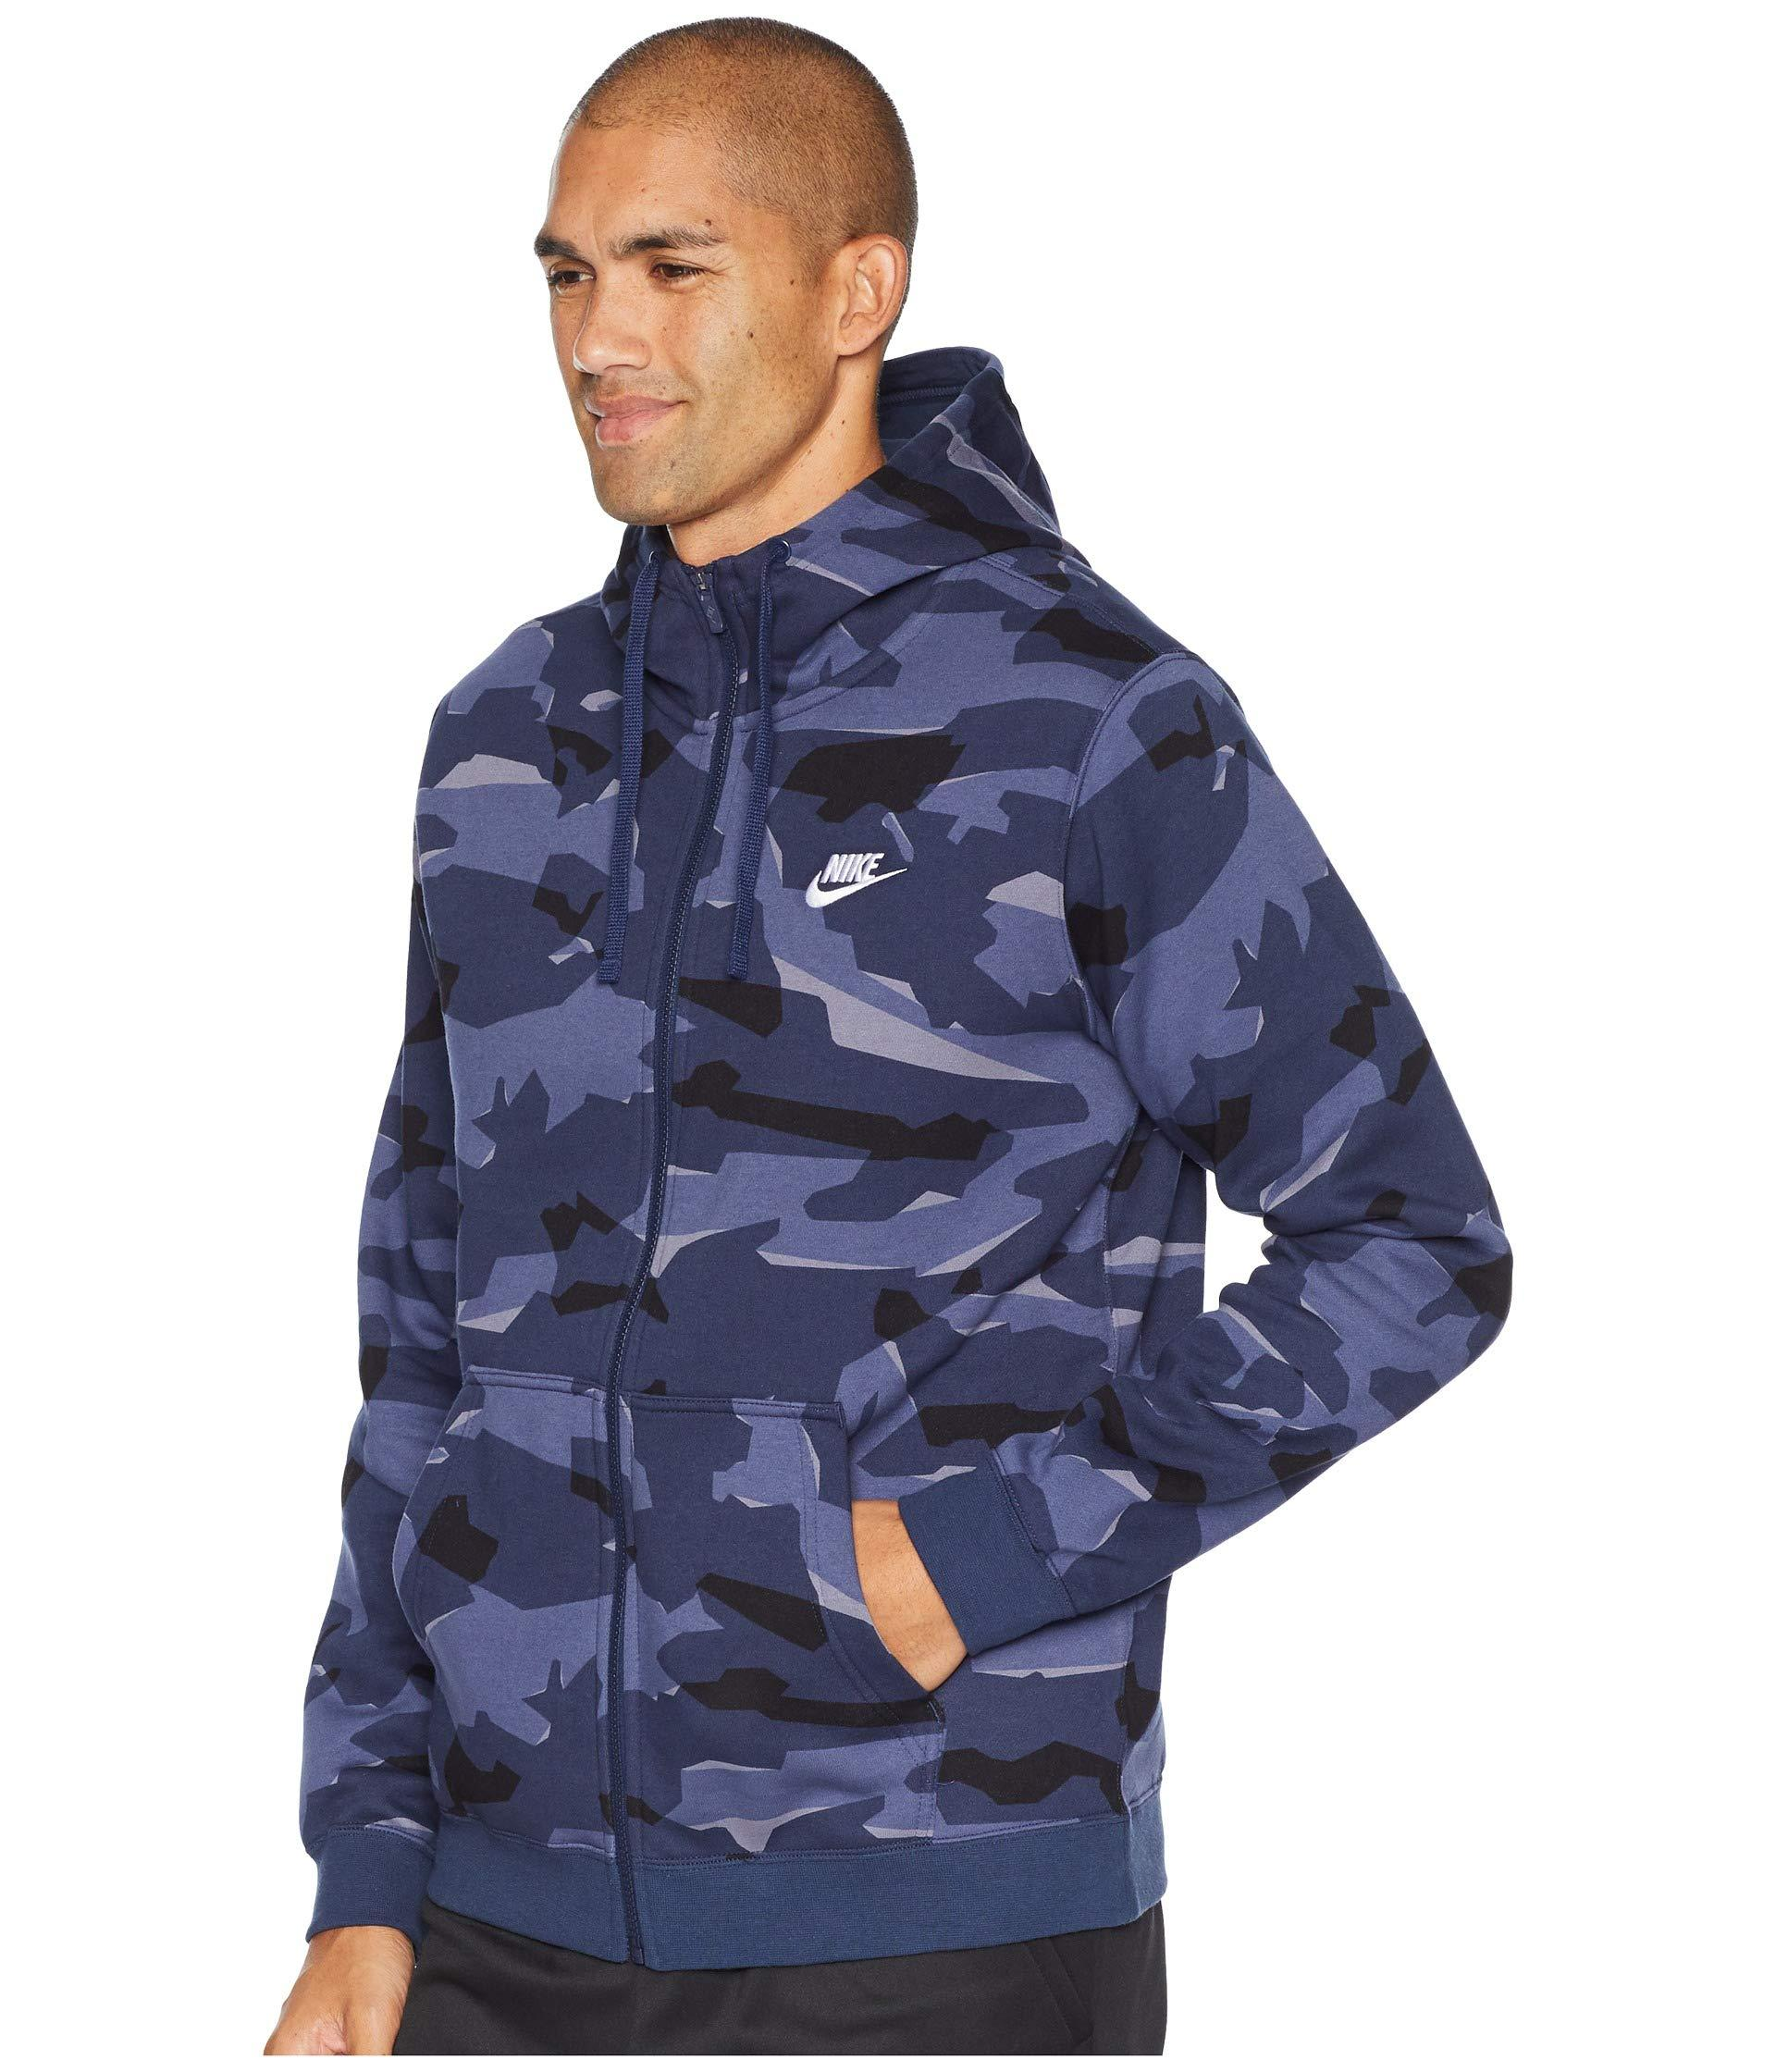 7f06b594a4e2 Lyst - Nike Nsw Club Camo Hoodie Full Zip Bb in Blue for Men - Save 33%